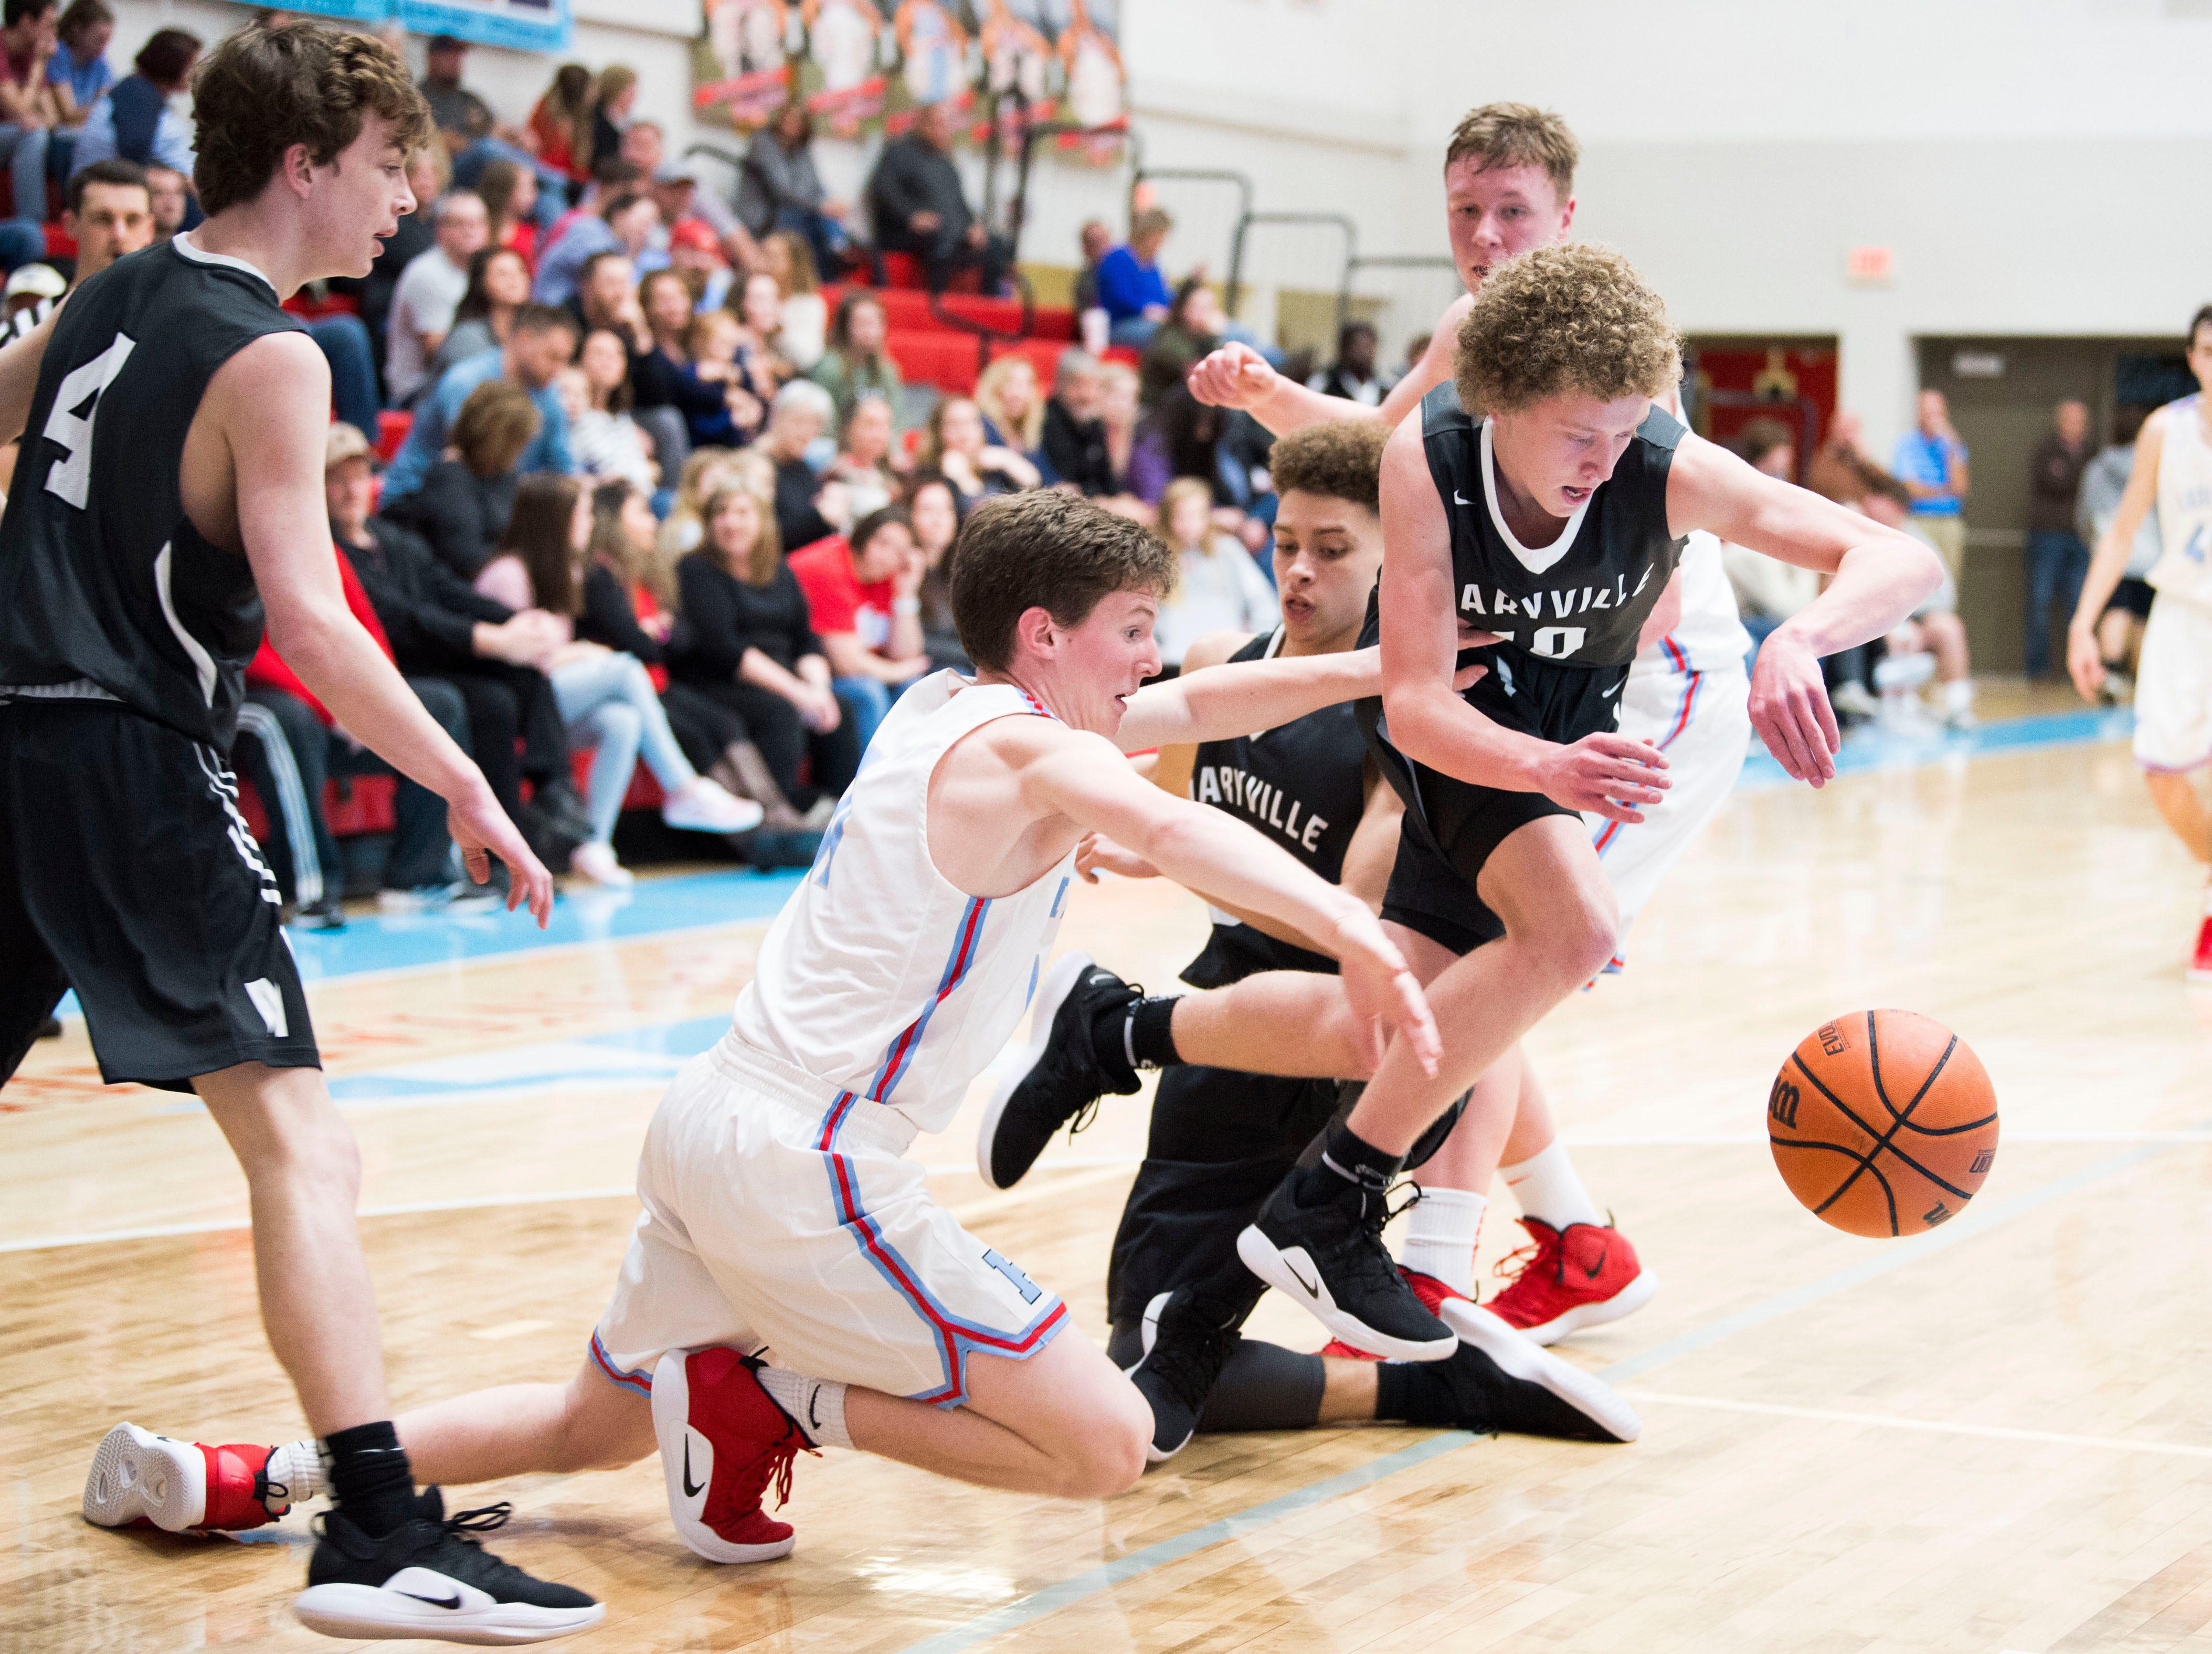 Maryville's Charlie Rice (10) gains possession of the ball during a high school basketball game between Maryville and Heritage at Heritage Friday, Jan. 4, 2019. Both Maryville boys and girls teams beat Heritage.